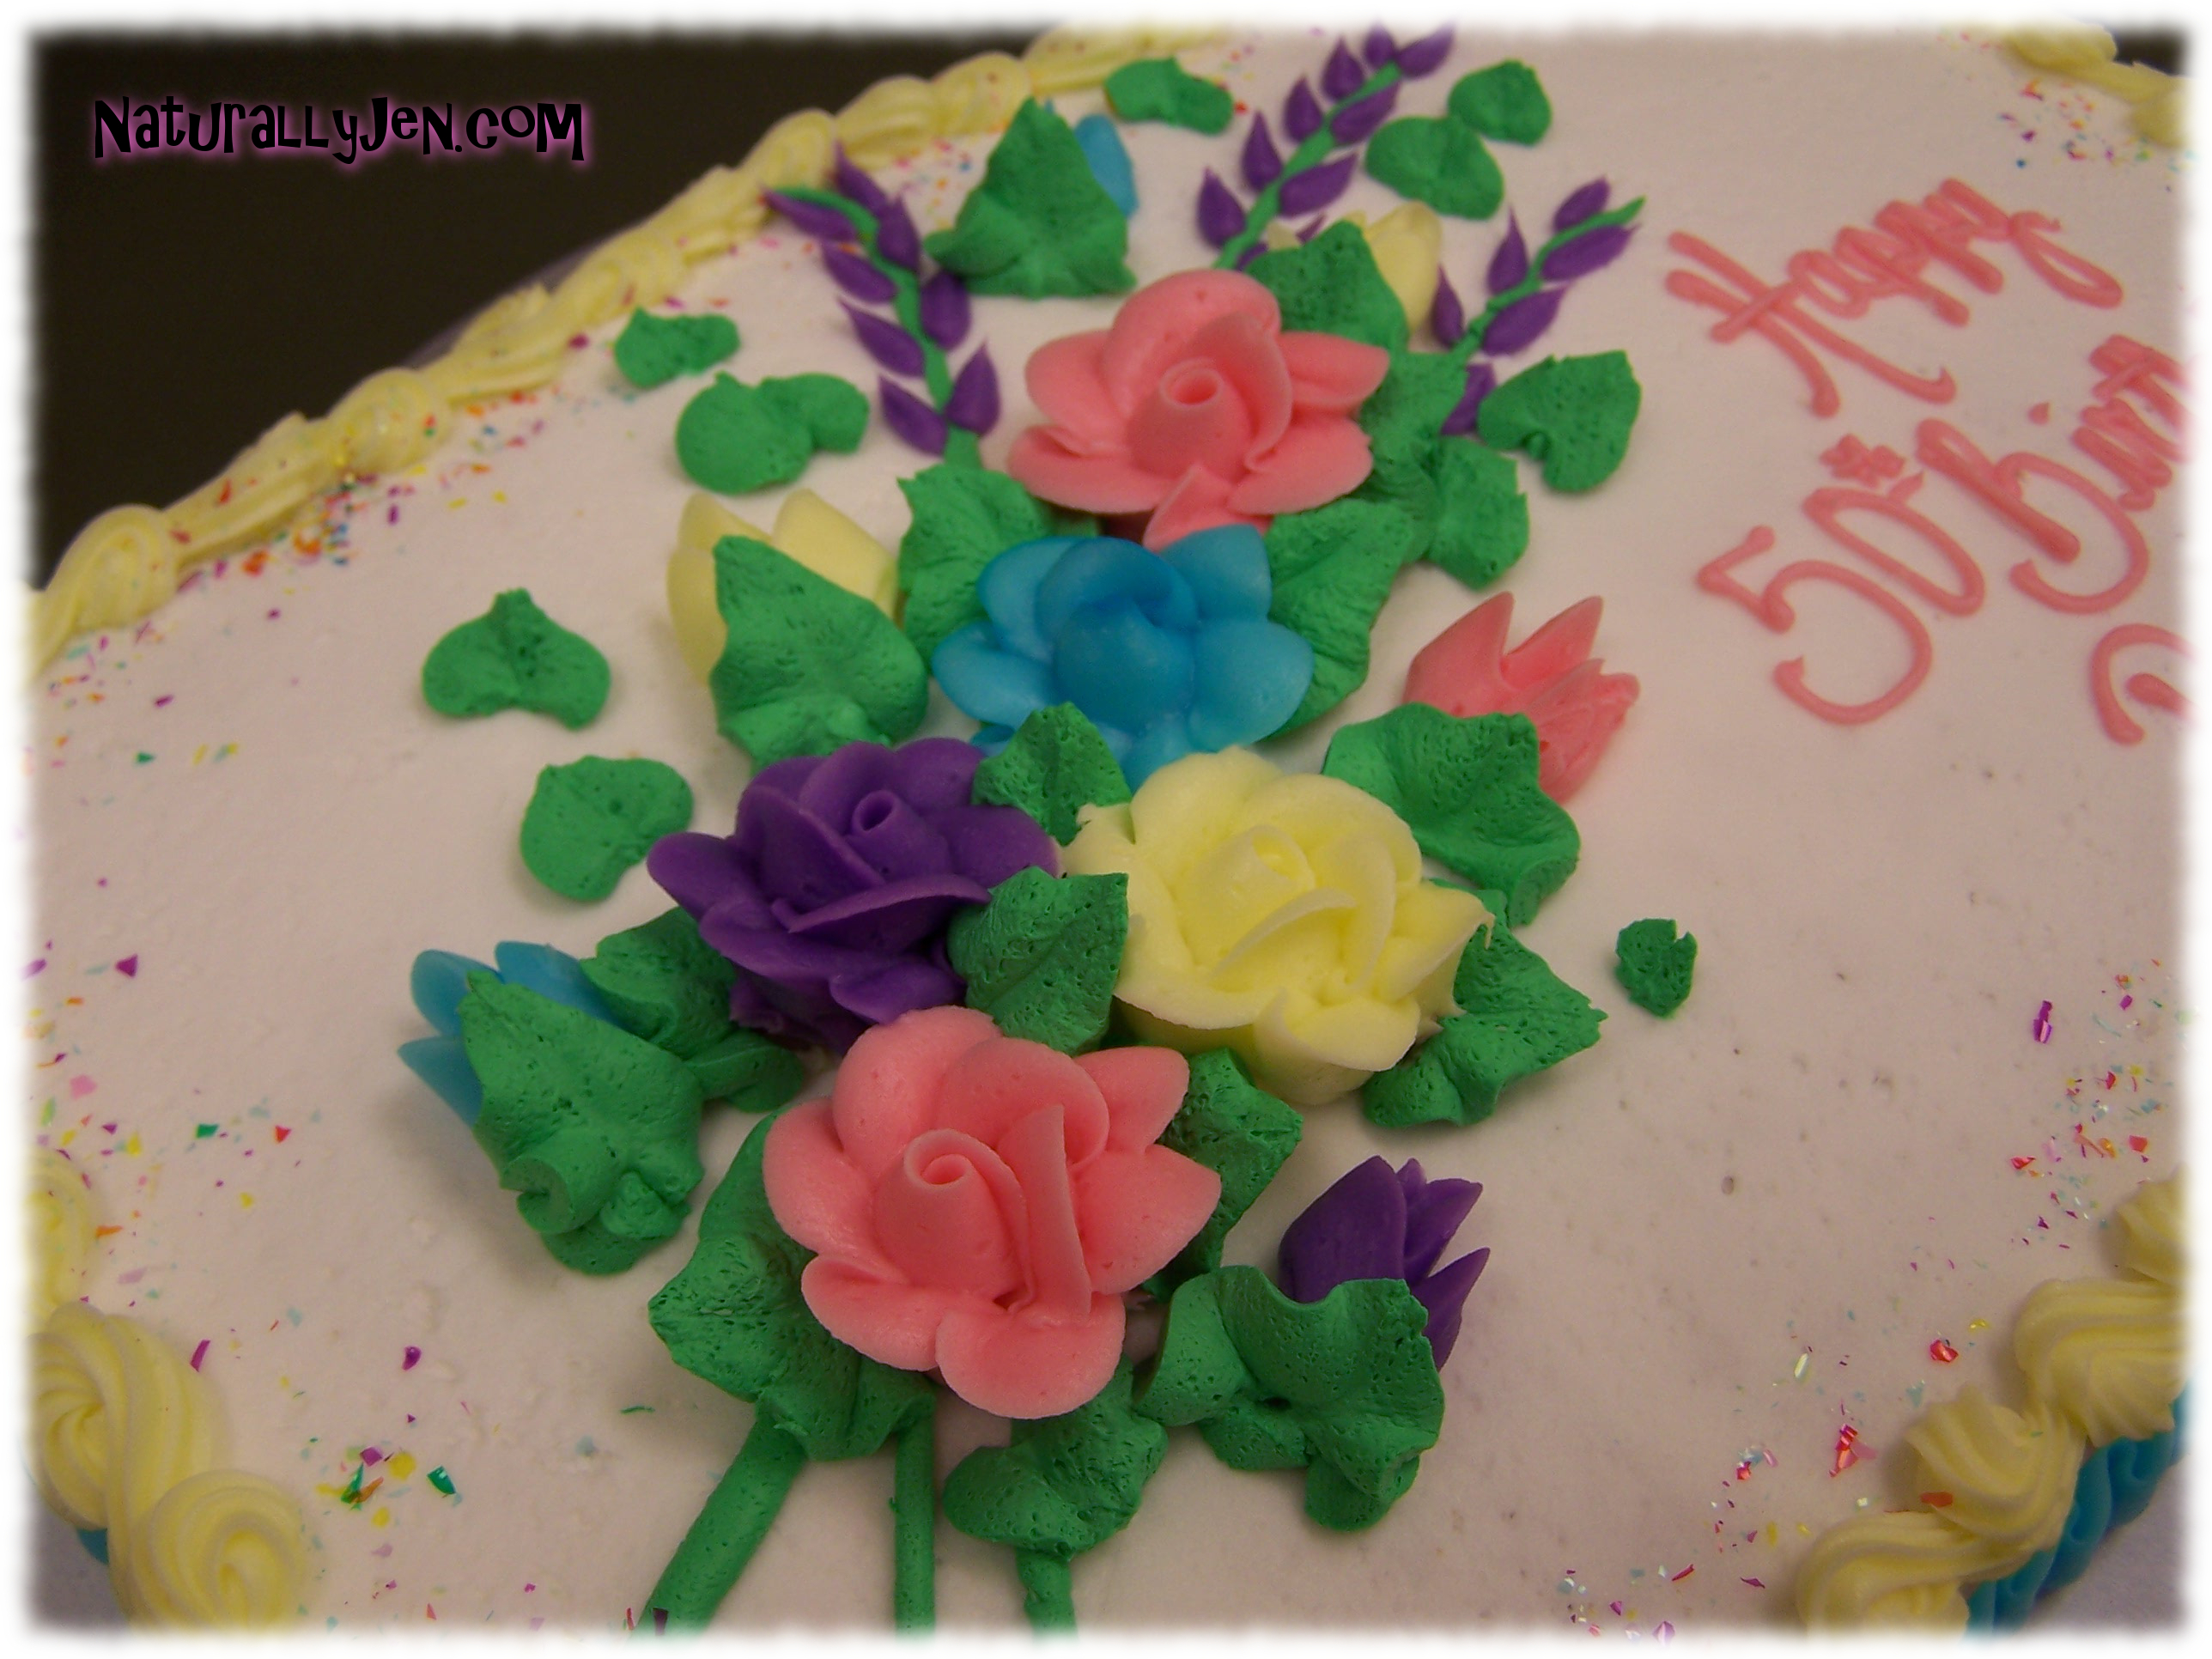 Frosting Flowers on Birthday Cake